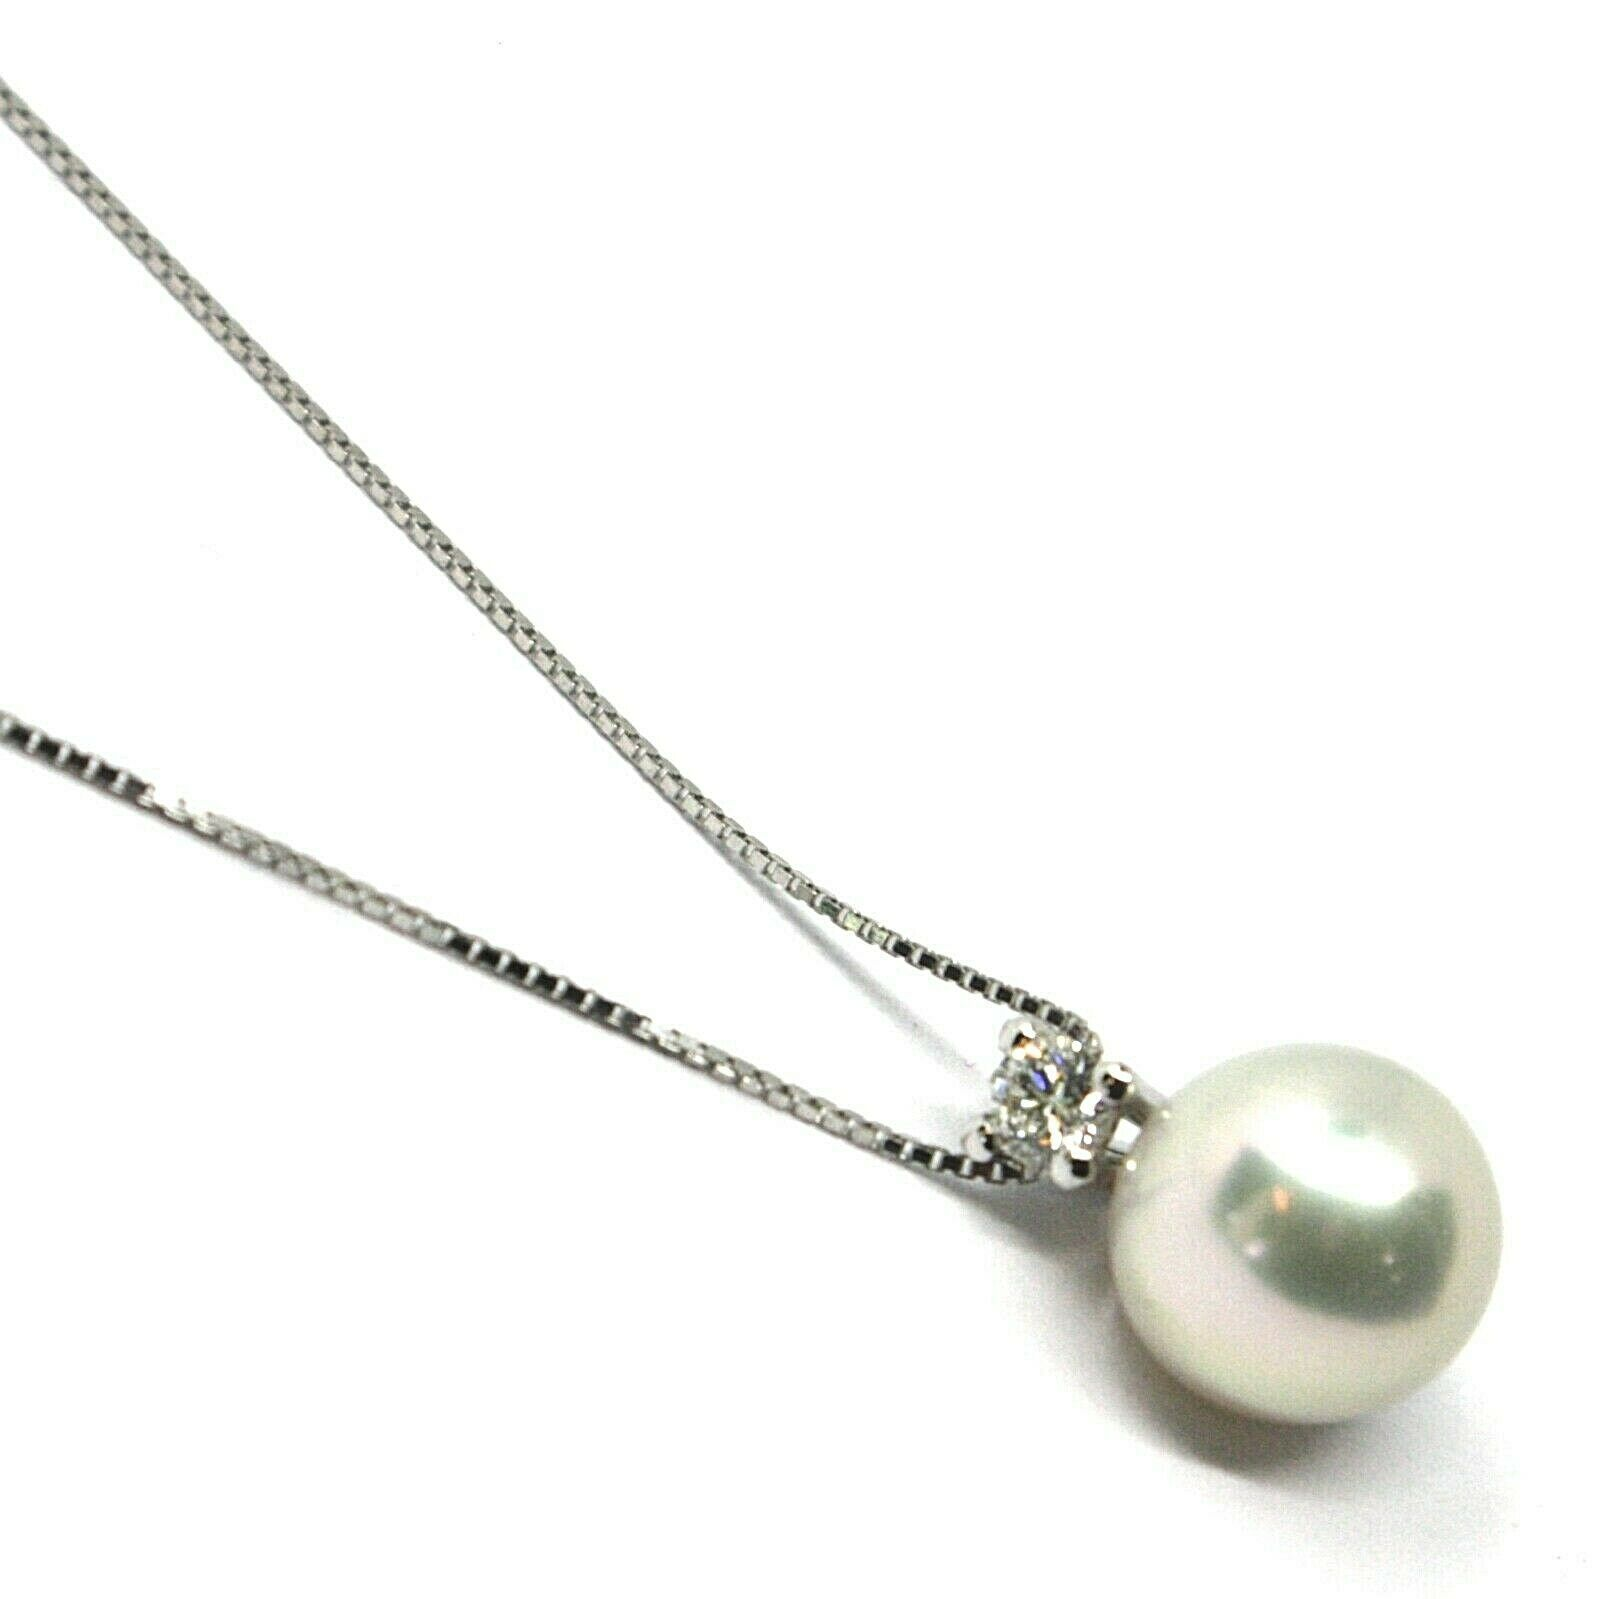 18K WHITE GOLD NECKLACE & PENDANT, SALTWATER AKOYA PEARL 7.5/8 MM, DIAMOND 0.07